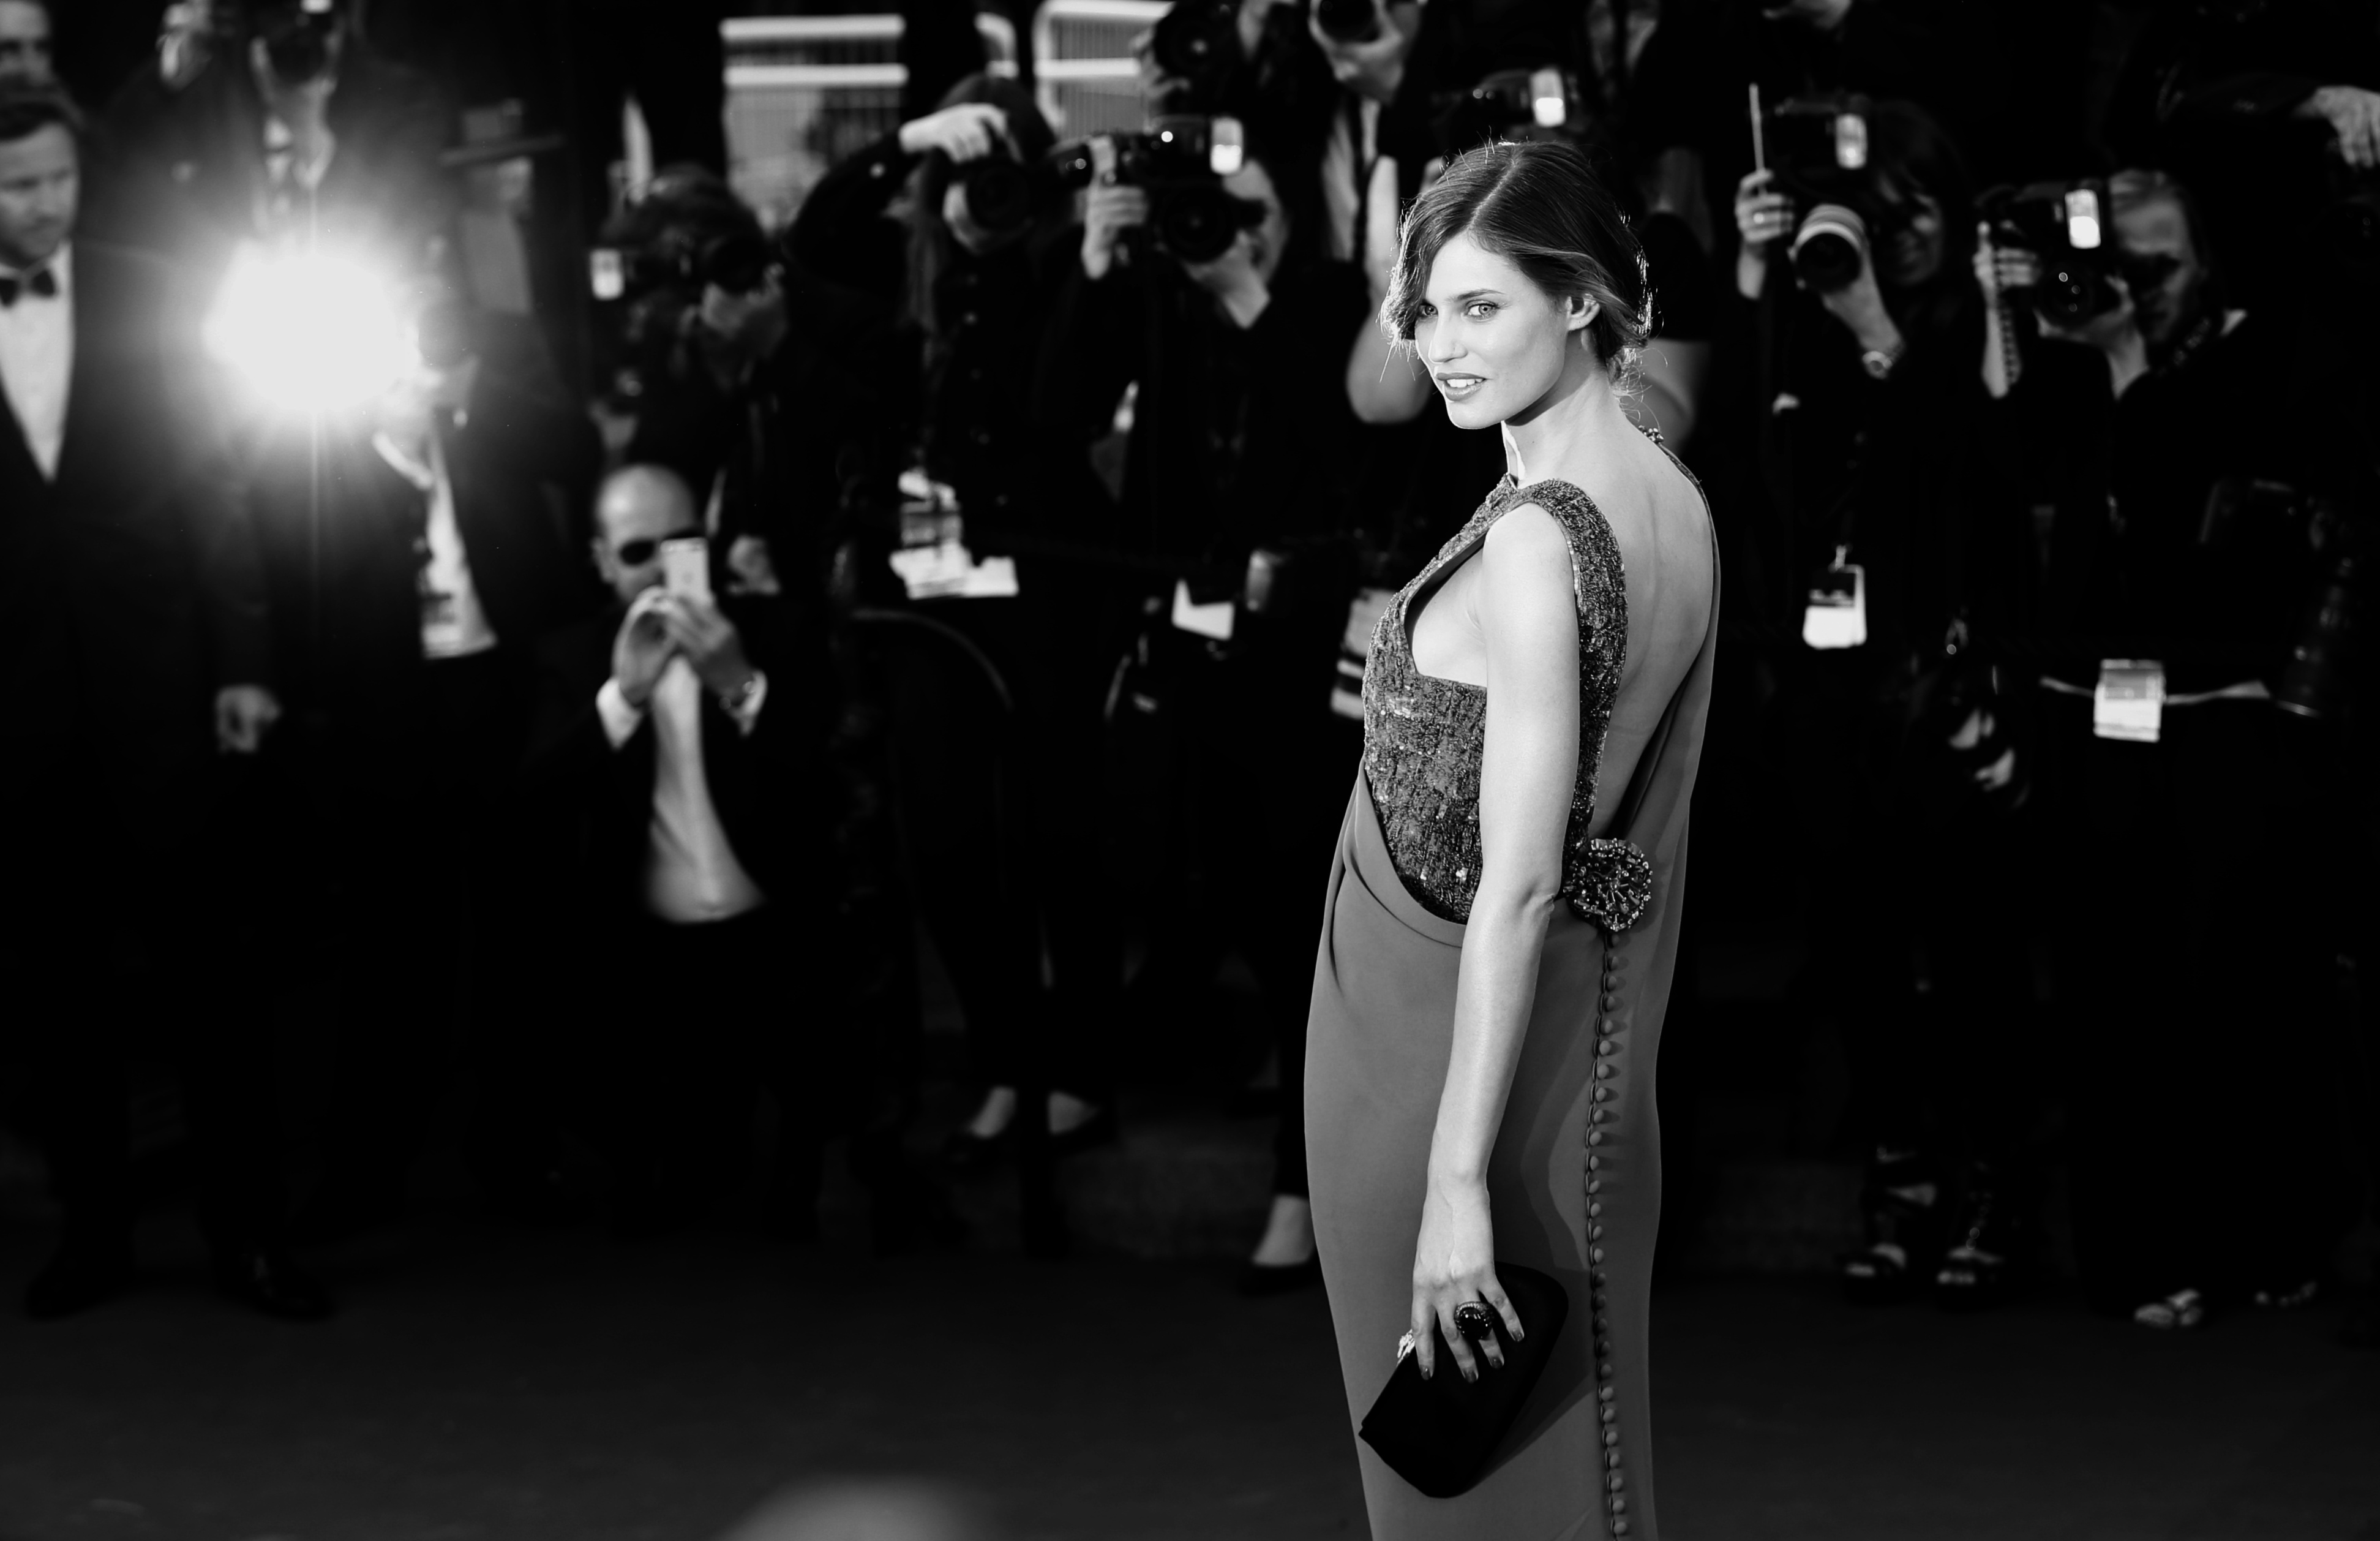 CANNES, FRANCE - MAY 24:  (EDITORS NOTE: This image was processed using digital filters)   Bianca Balti attends 'The Immigrant' Premiere during  the 66th Annual Cannes Film Festival on May 24, 2013 in Cannes, France.  (Photo by Vittorio Zunino Celotto/Getty Images)